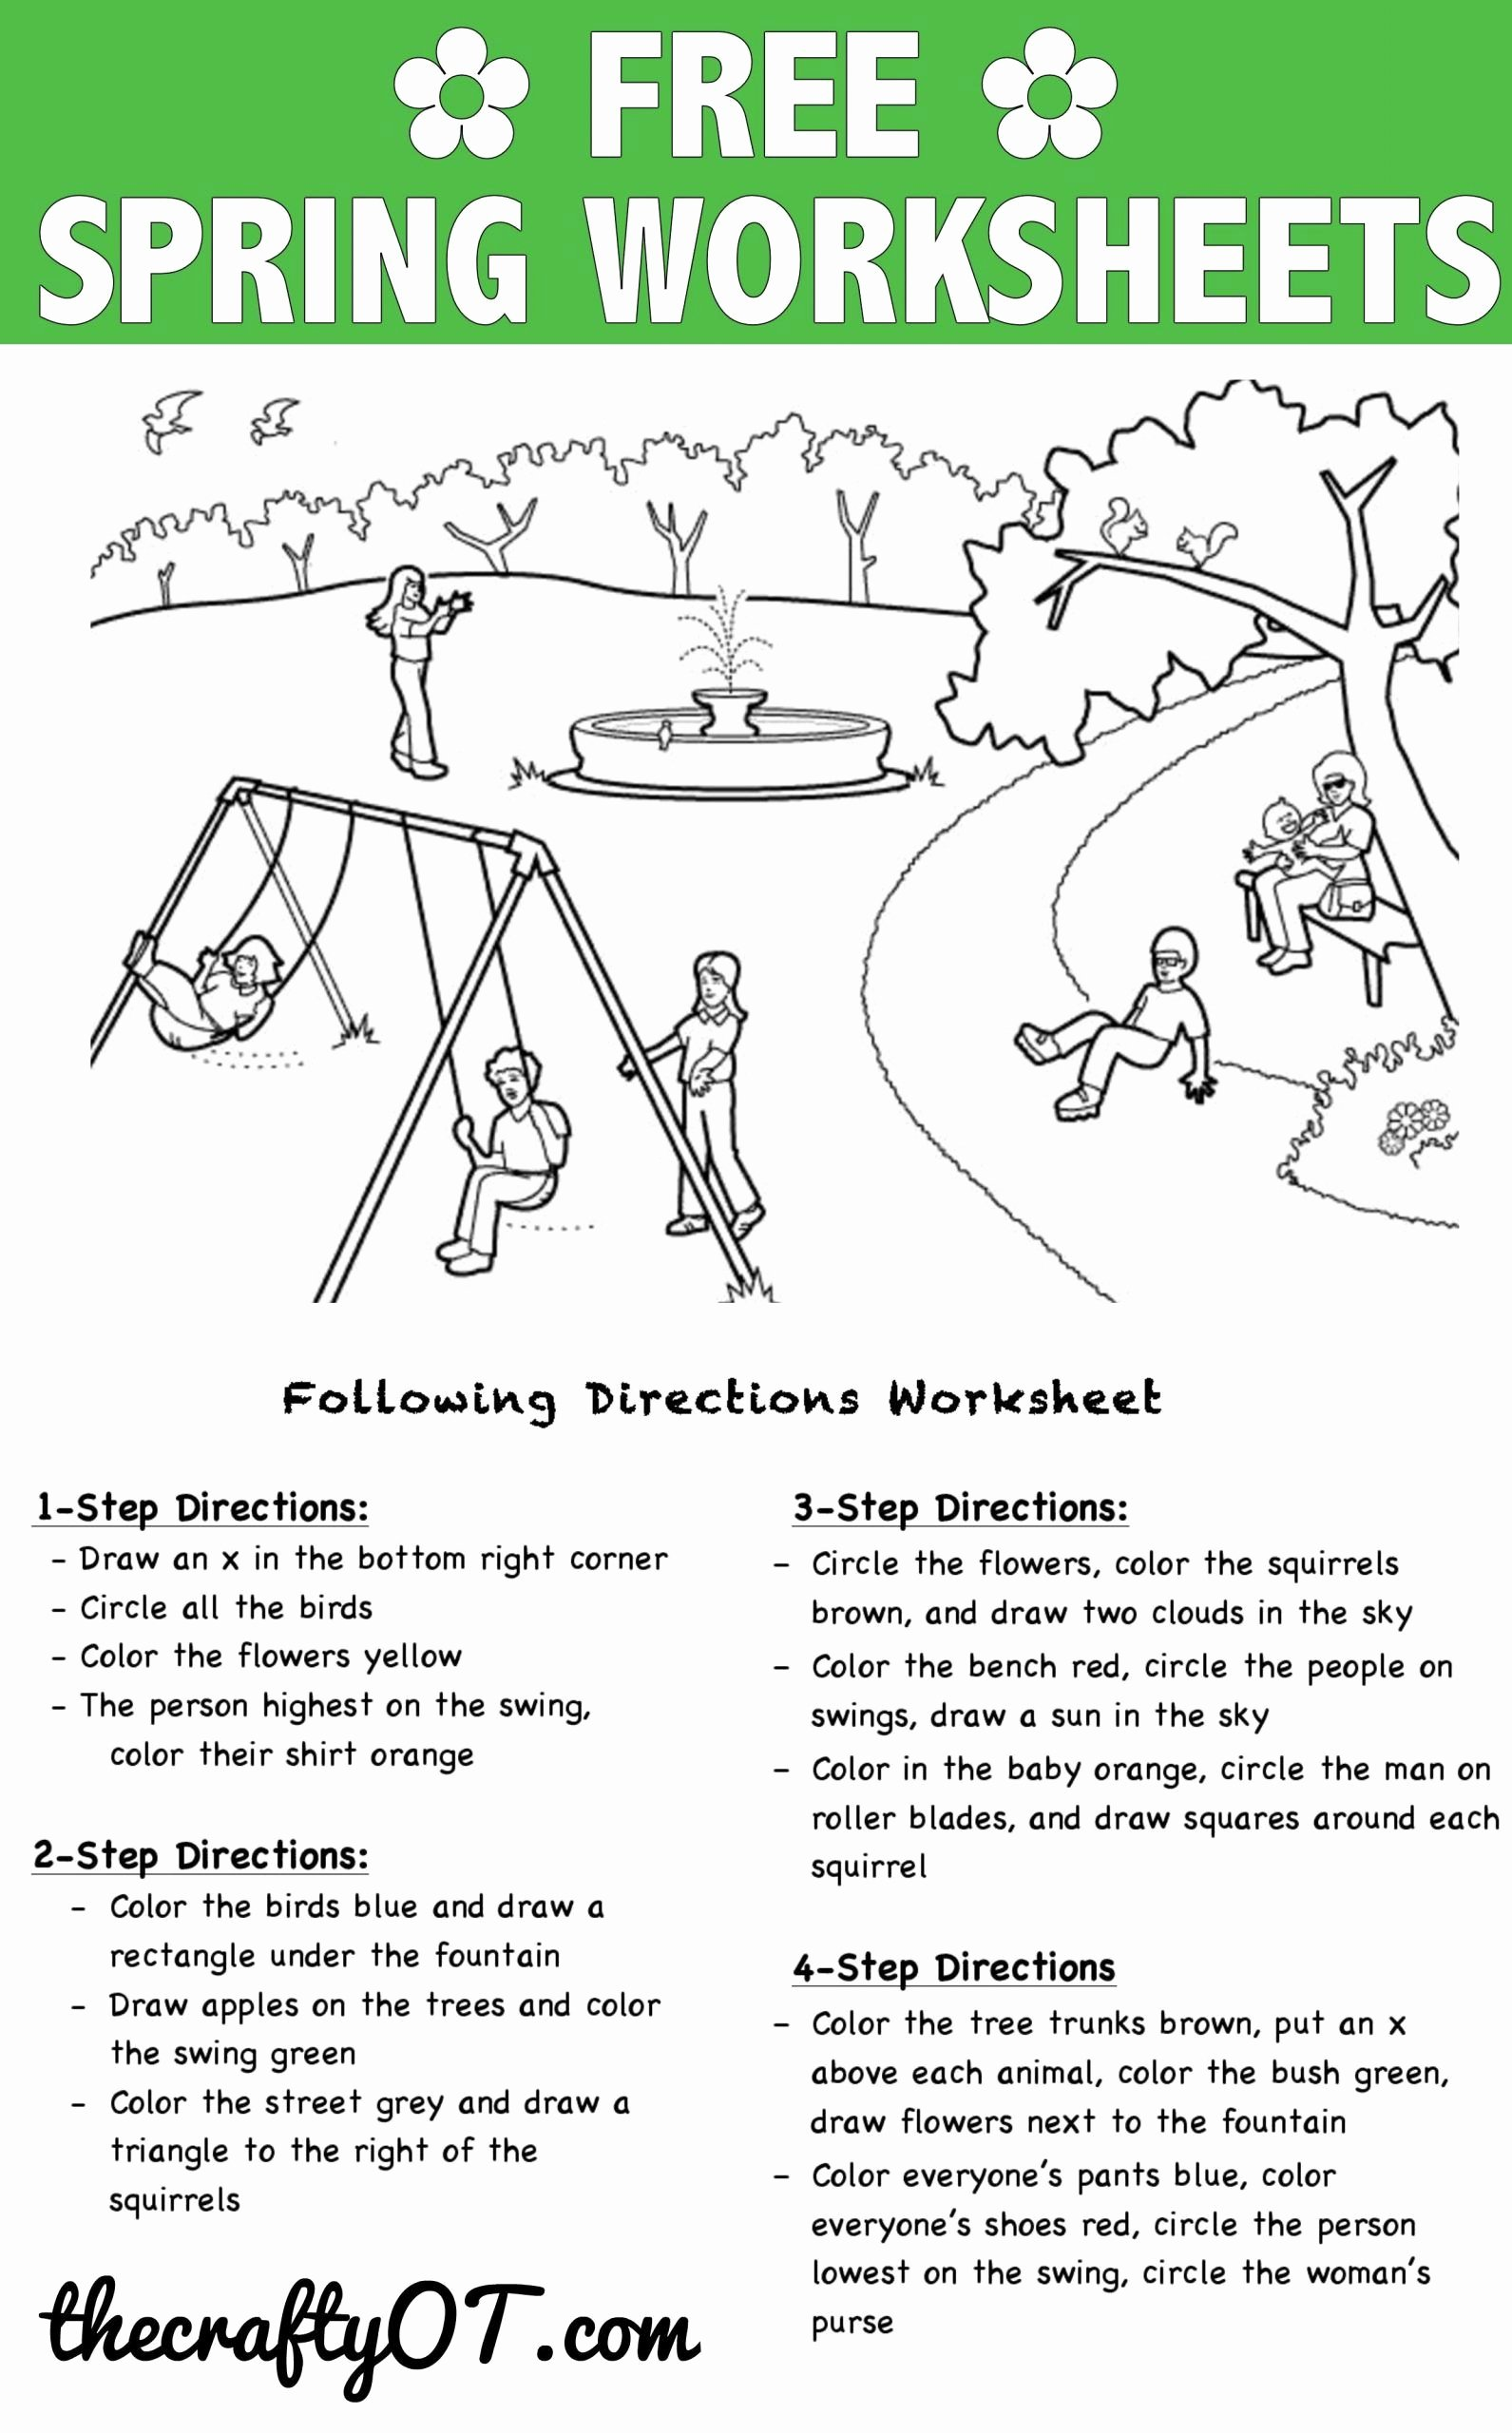 Following 2 Step Directions Worksheets Lovely Following Directions Worksheets Kindergarten In 2020